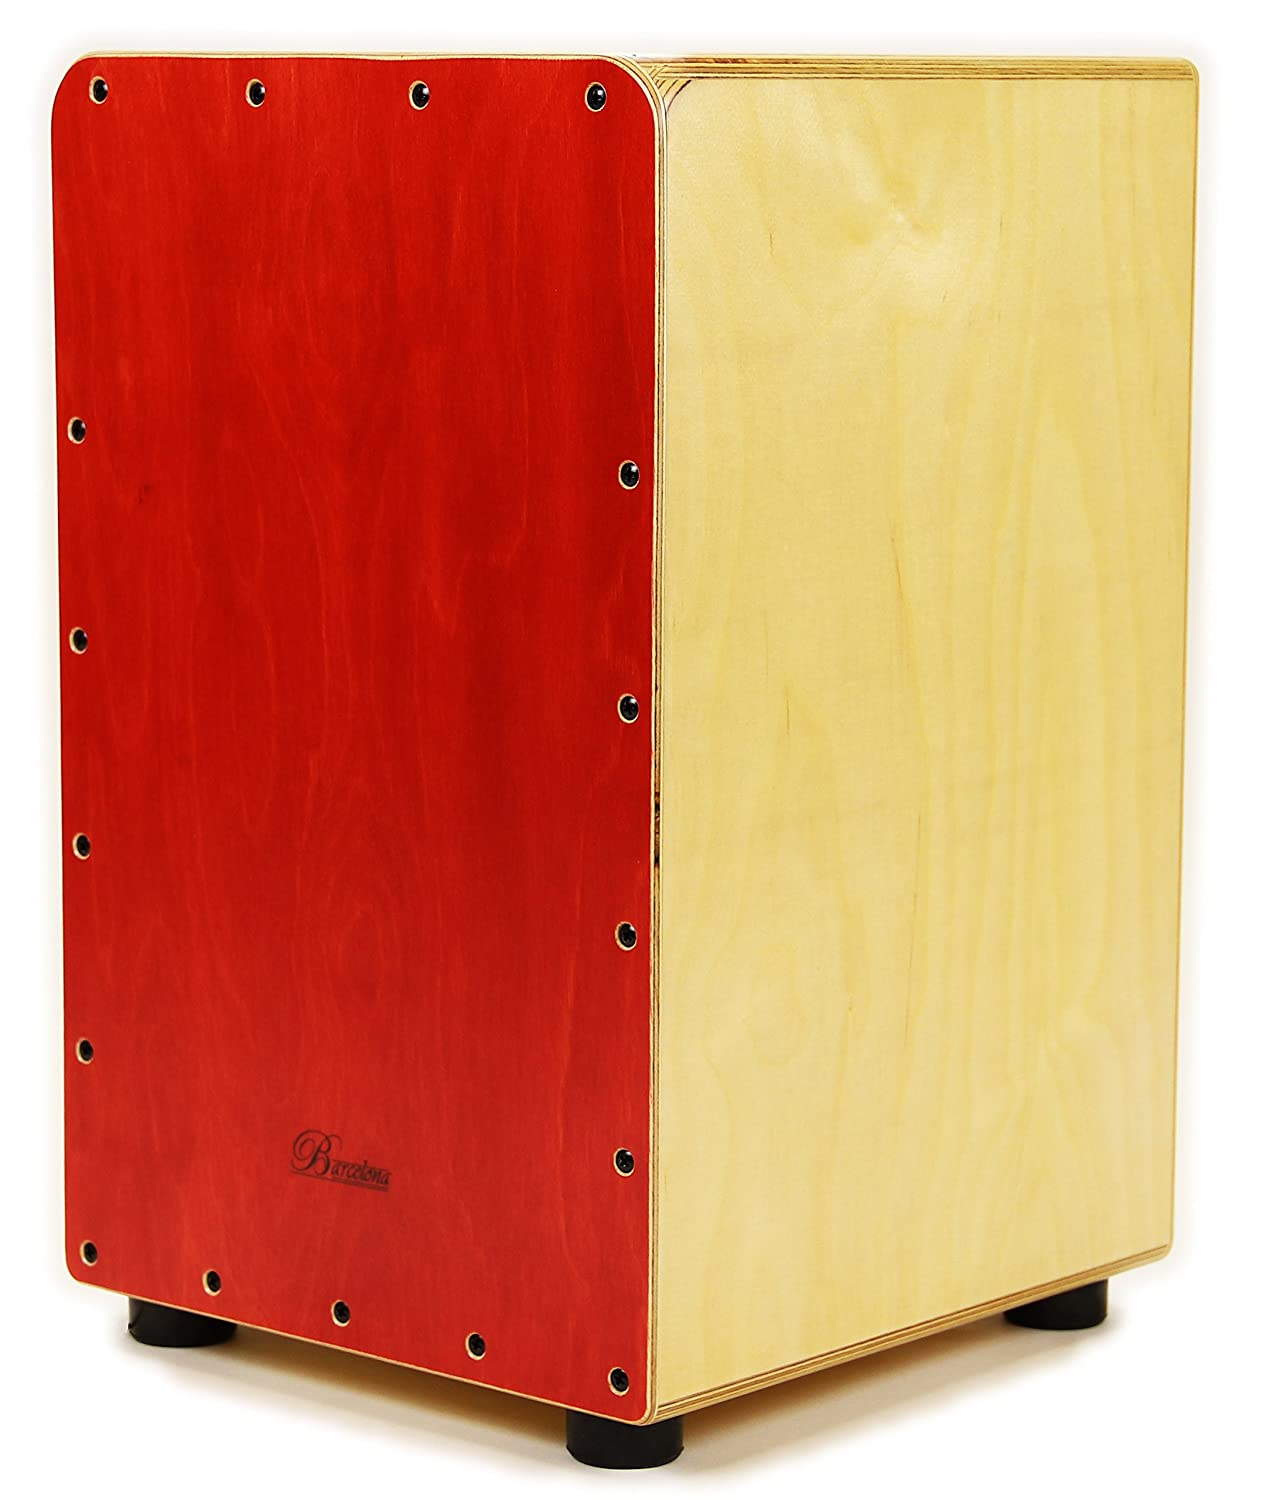 Barcelona Birchwood Cajon - Red CAJ-50M-RD